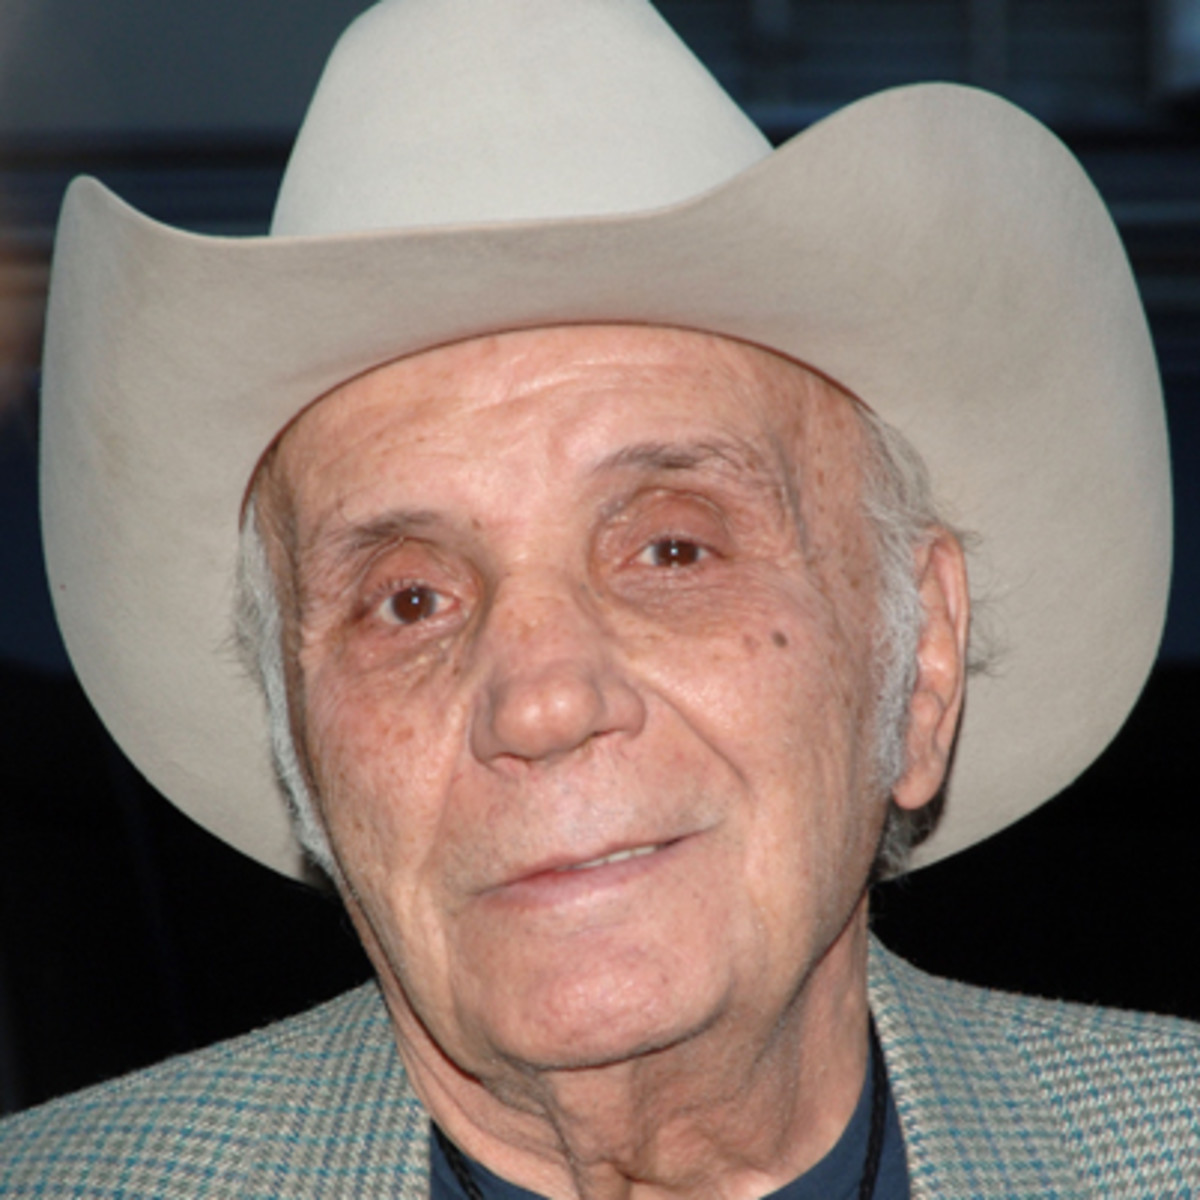 Jake LaMotta - Boxer - Biography